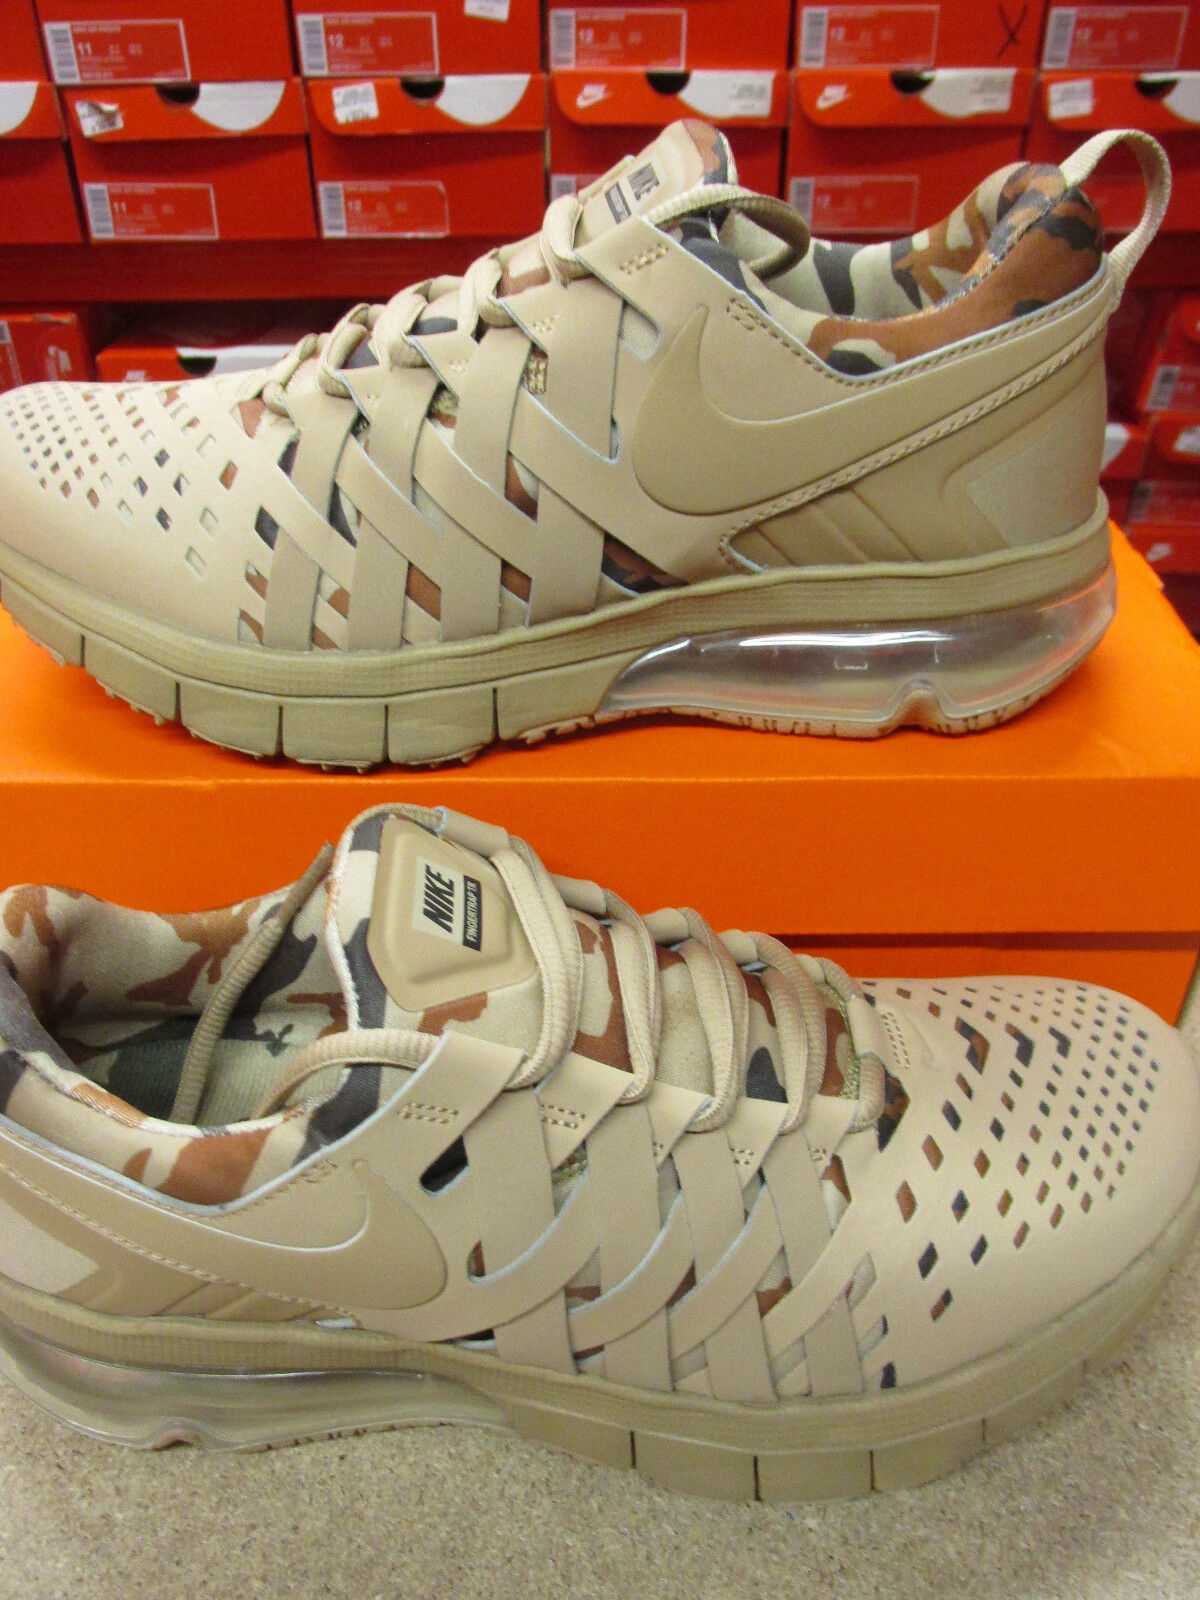 Nike Fingertrap Max AMP Mens Running Trainers 644672 201 Sneakers Shoes